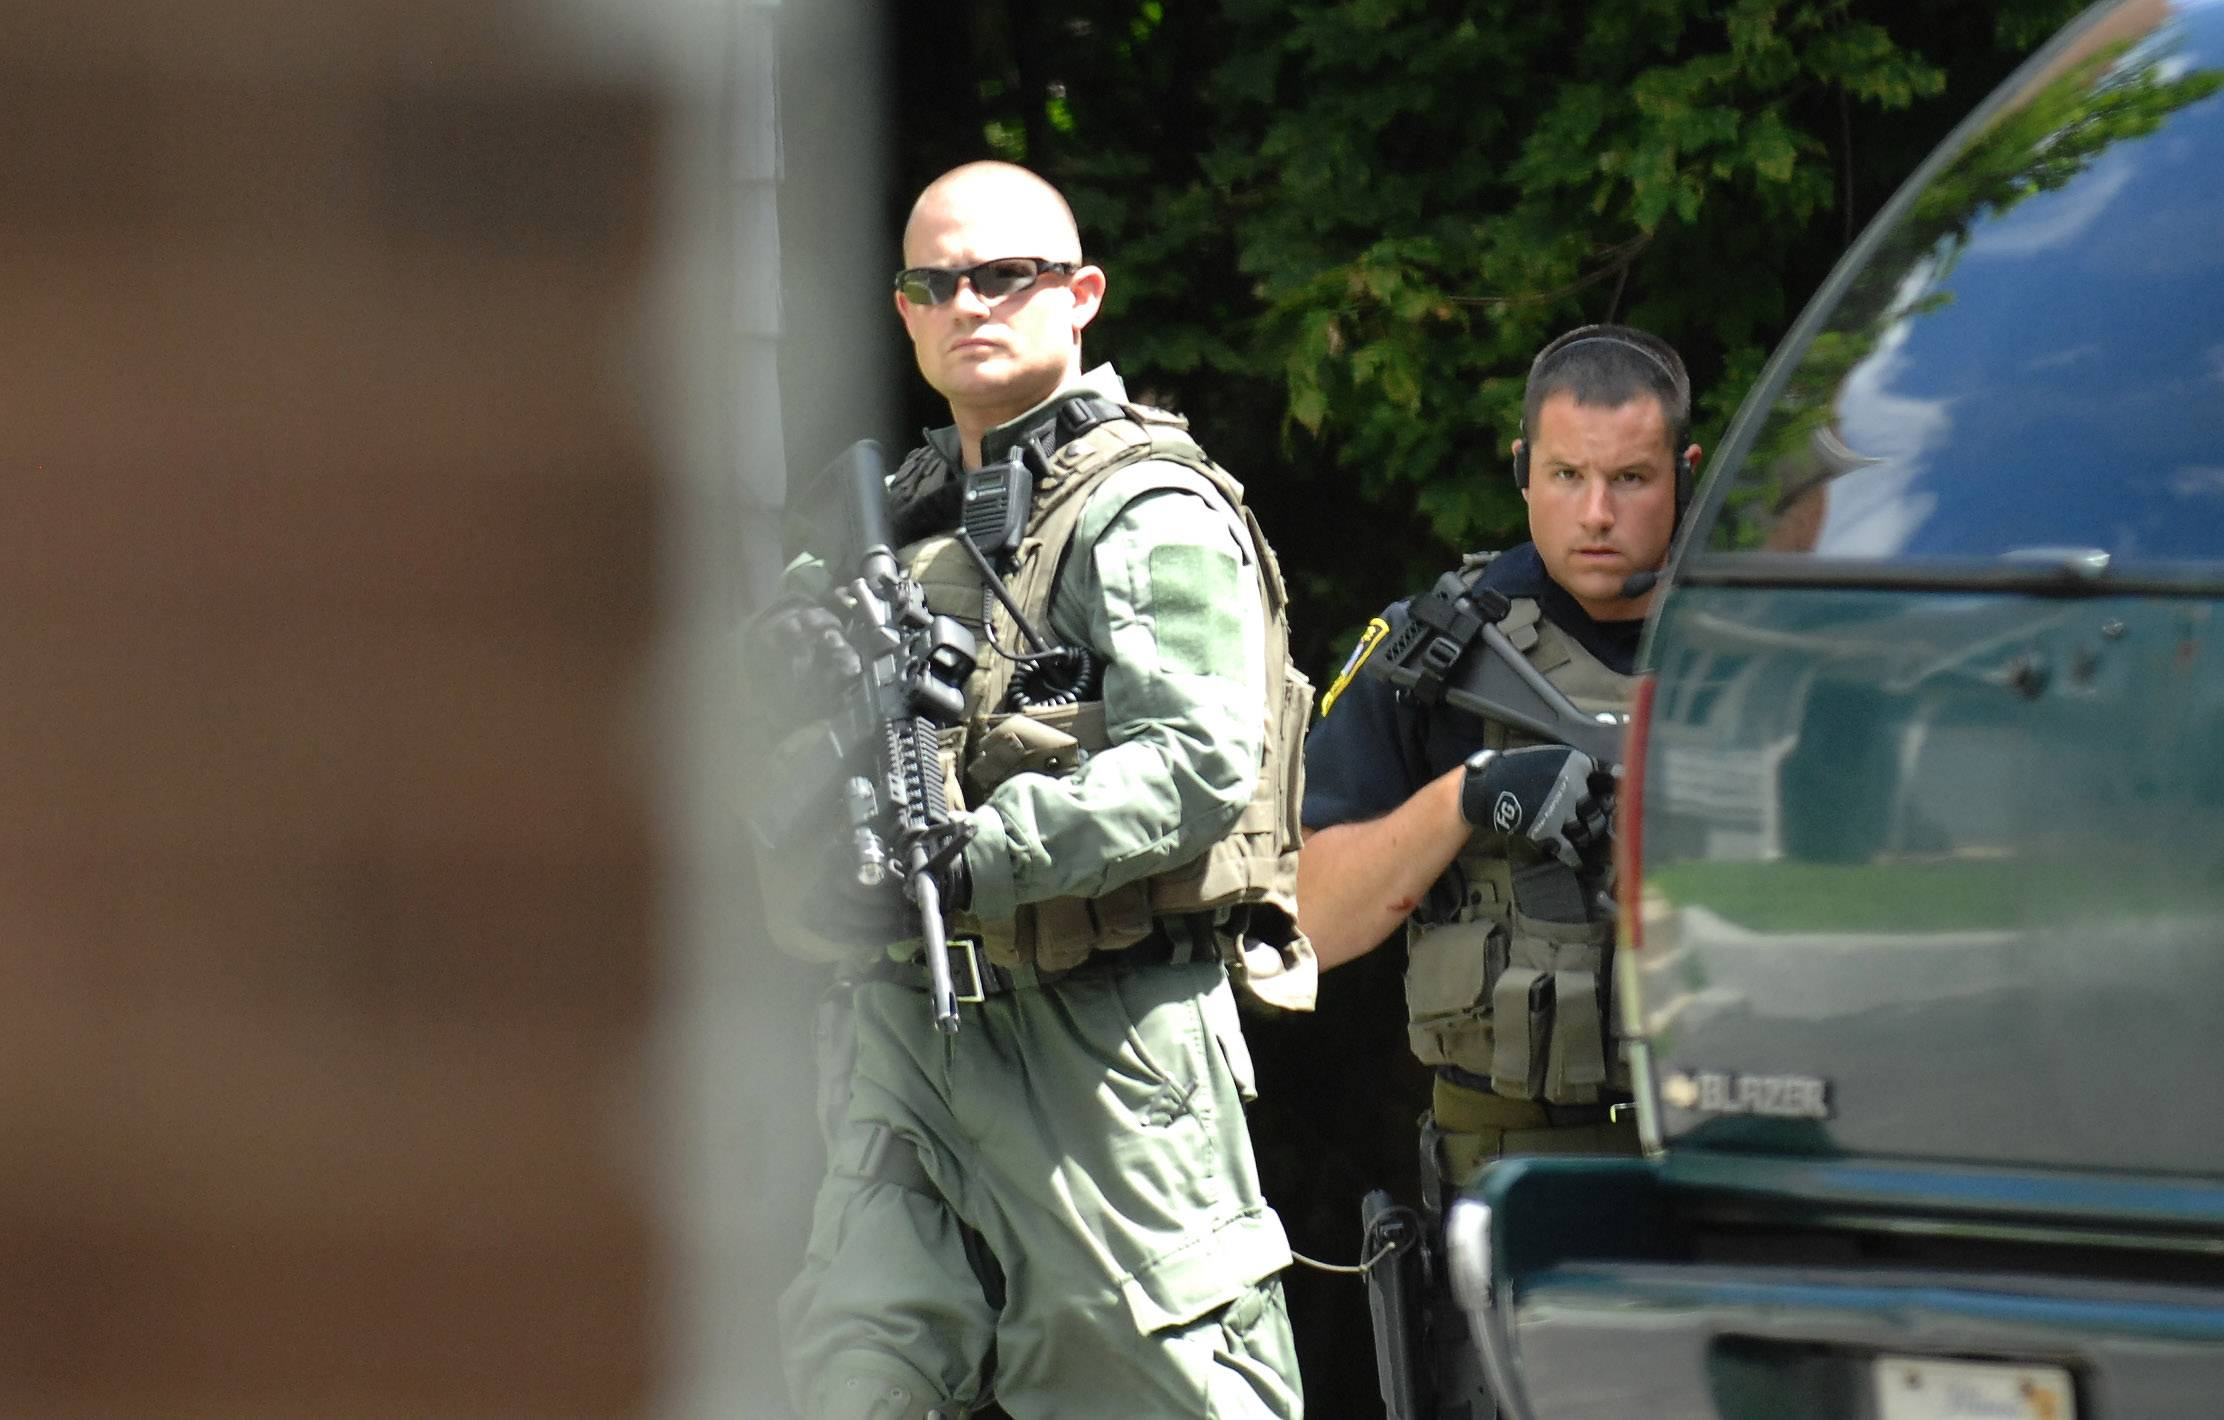 Elgin Police search a residential area on Seneca Street Wednesday looking for Jesse Vega.